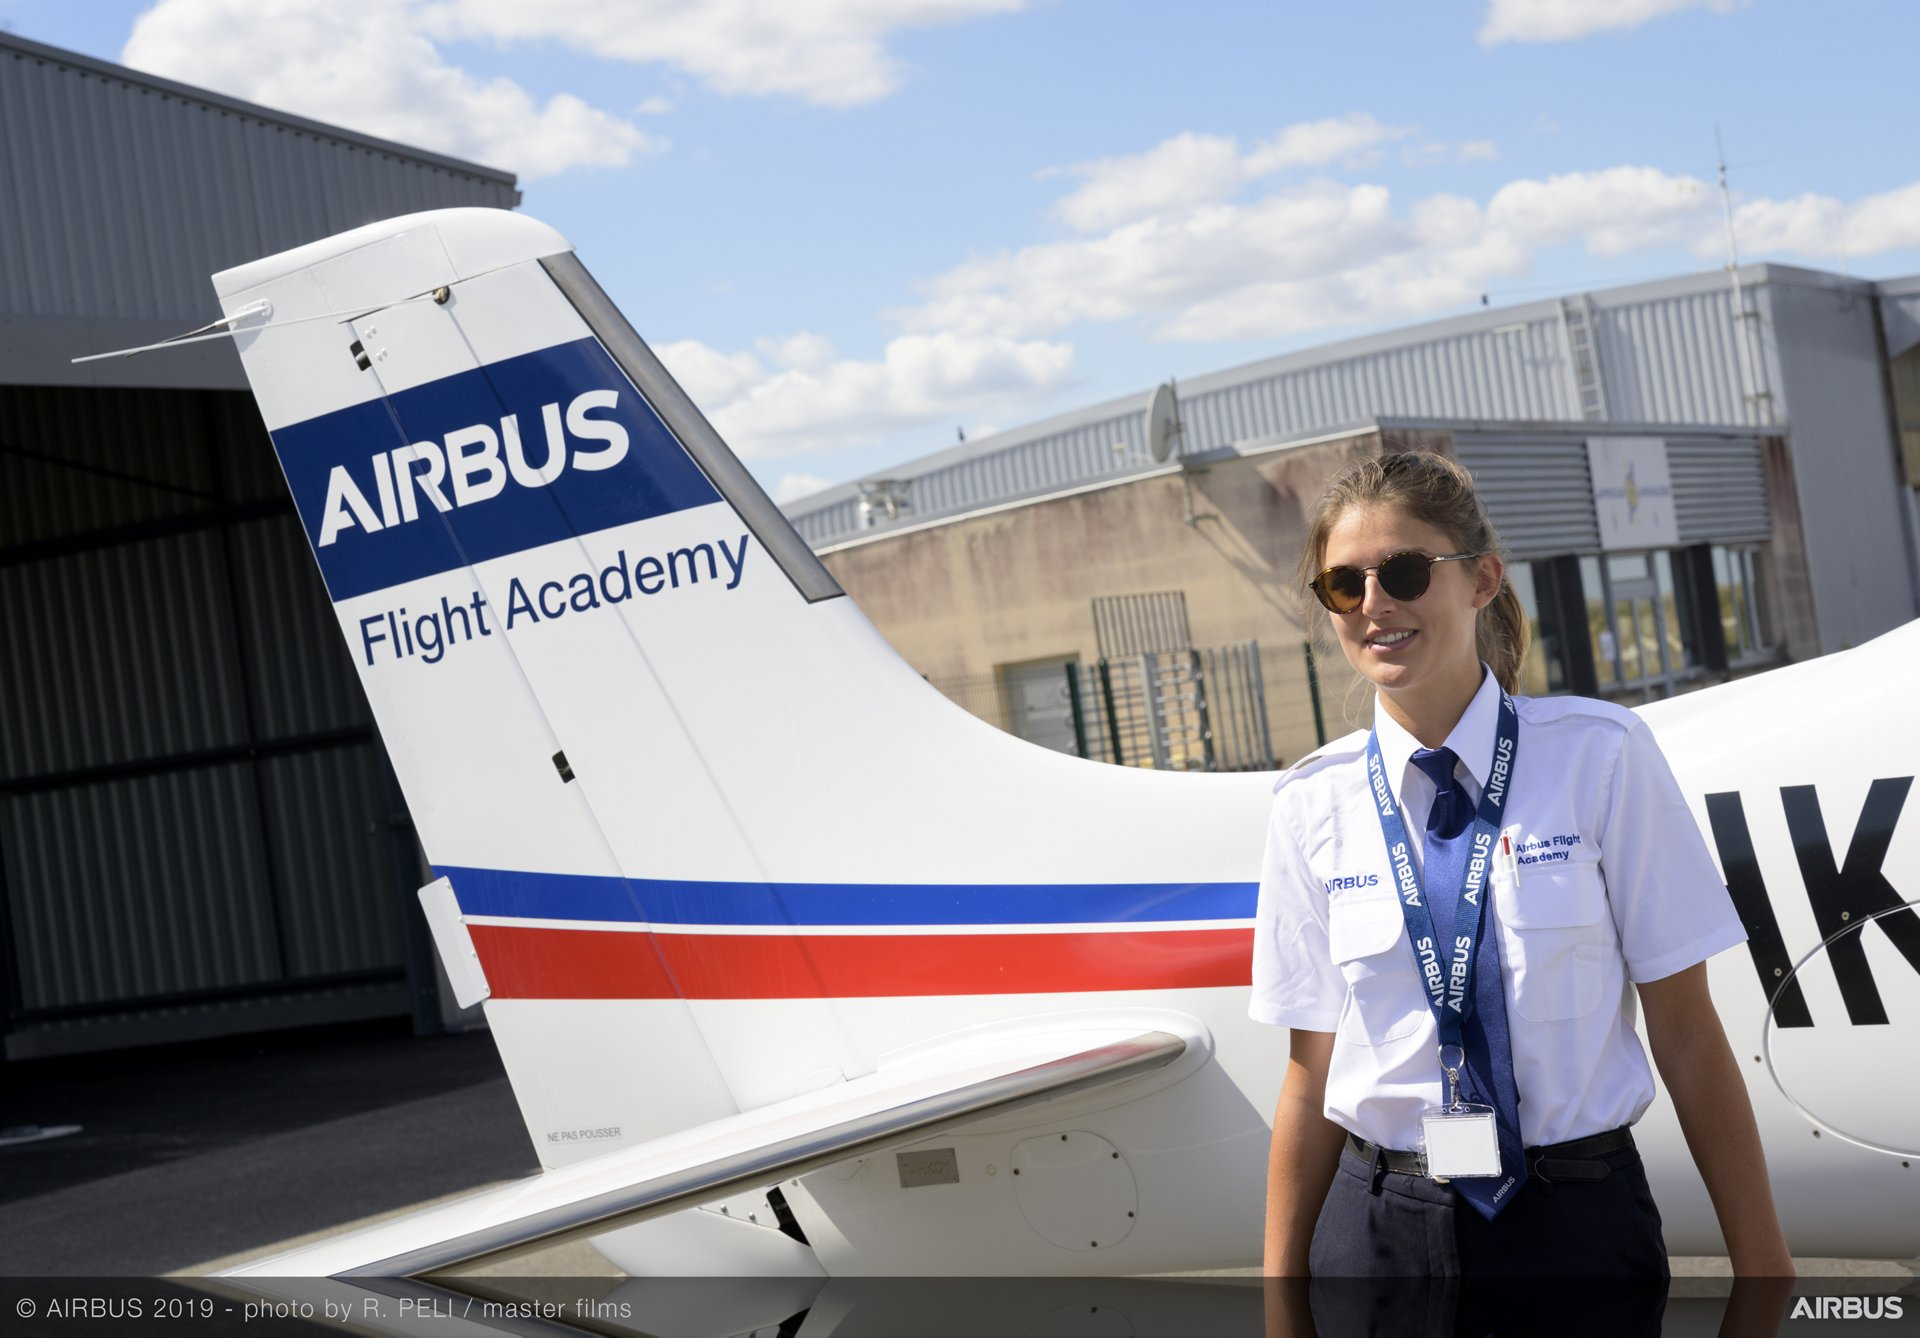 Discover Airbus Flight Academy